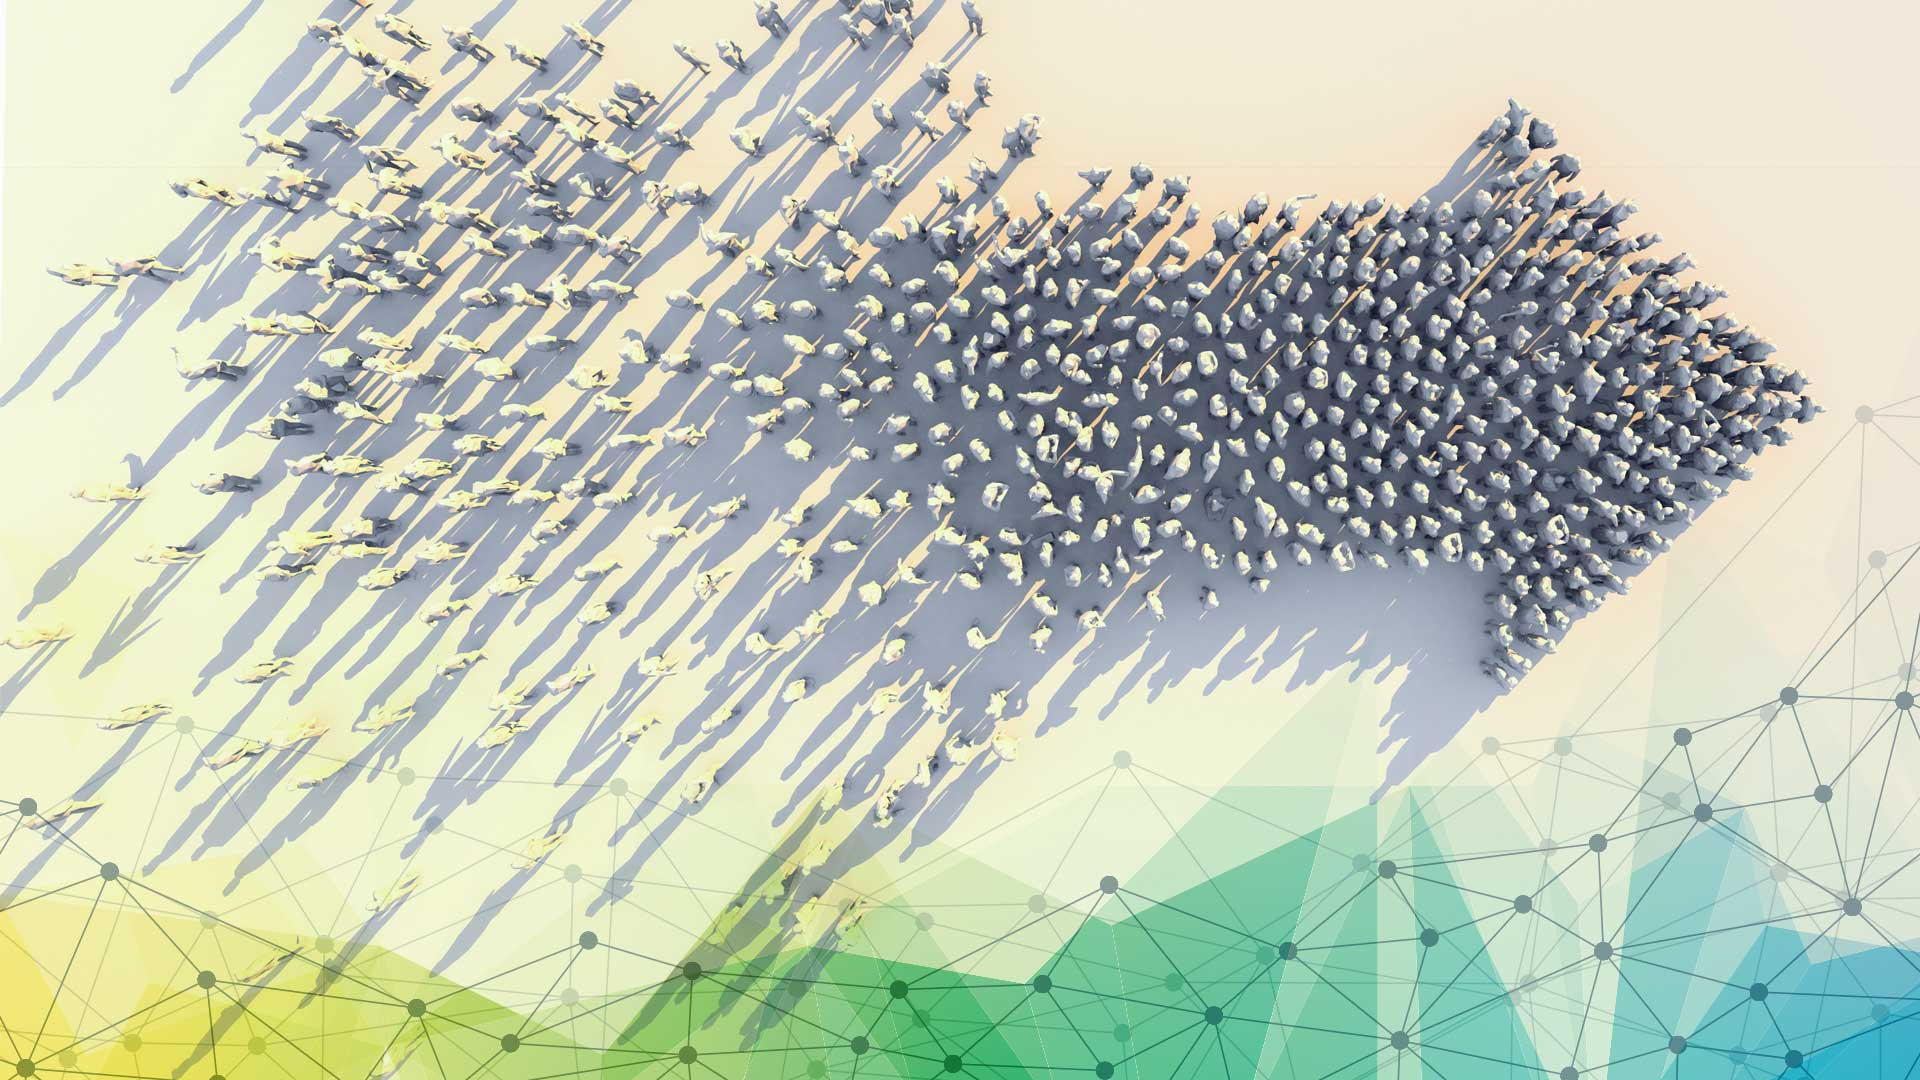 From Supply Chains to Digital Ecosystems with Multiparty Networks